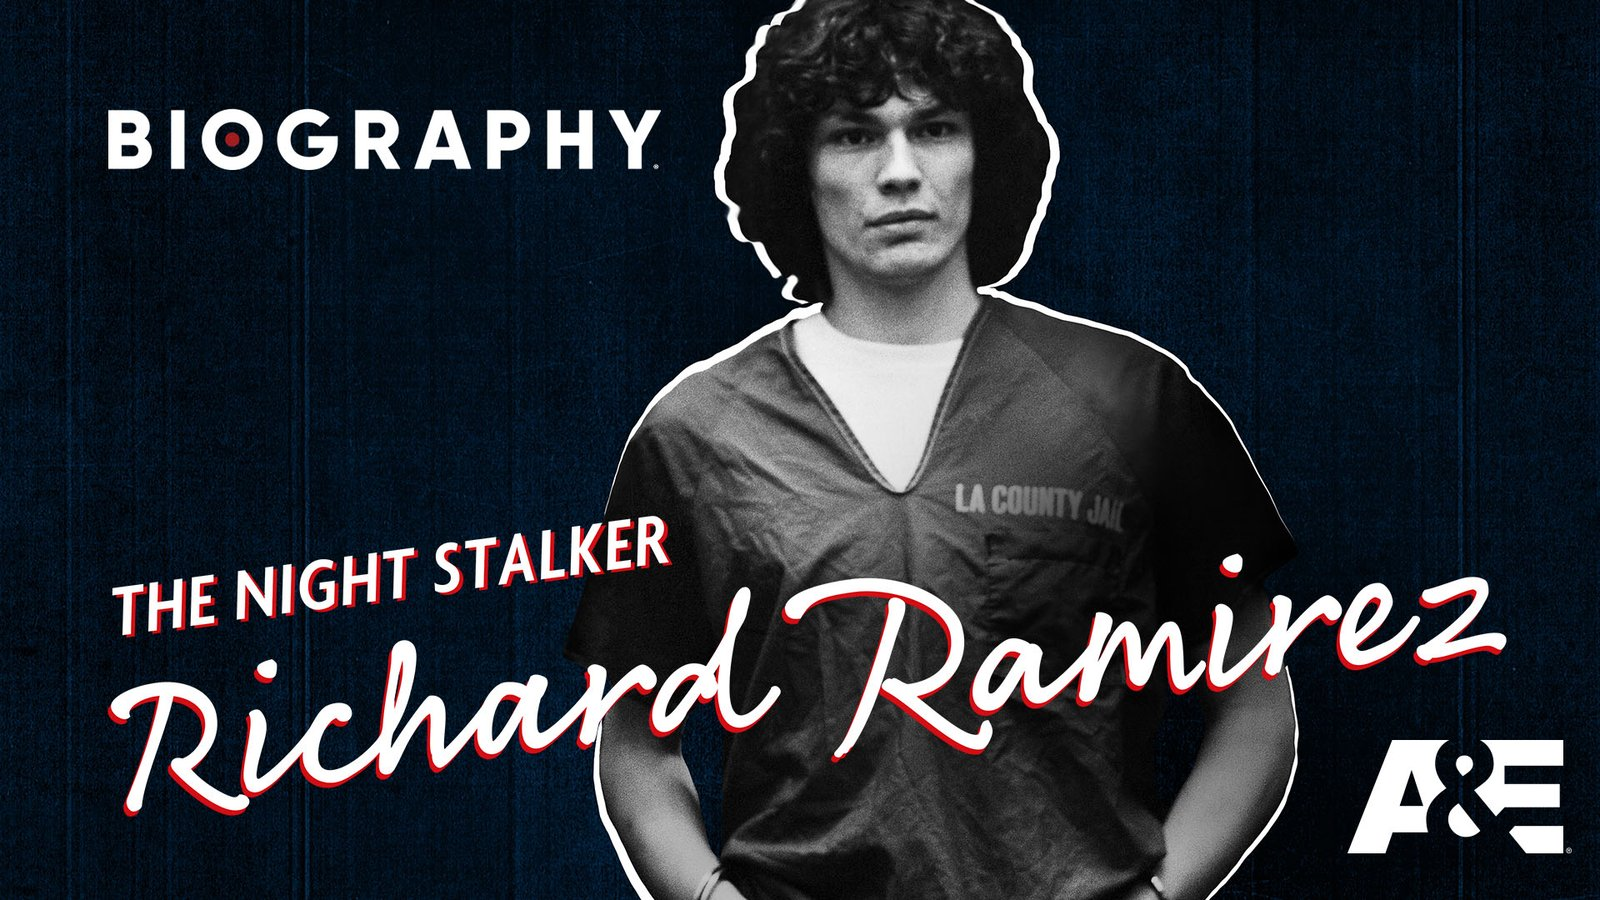 The Night Stalker: Richard Ramirez